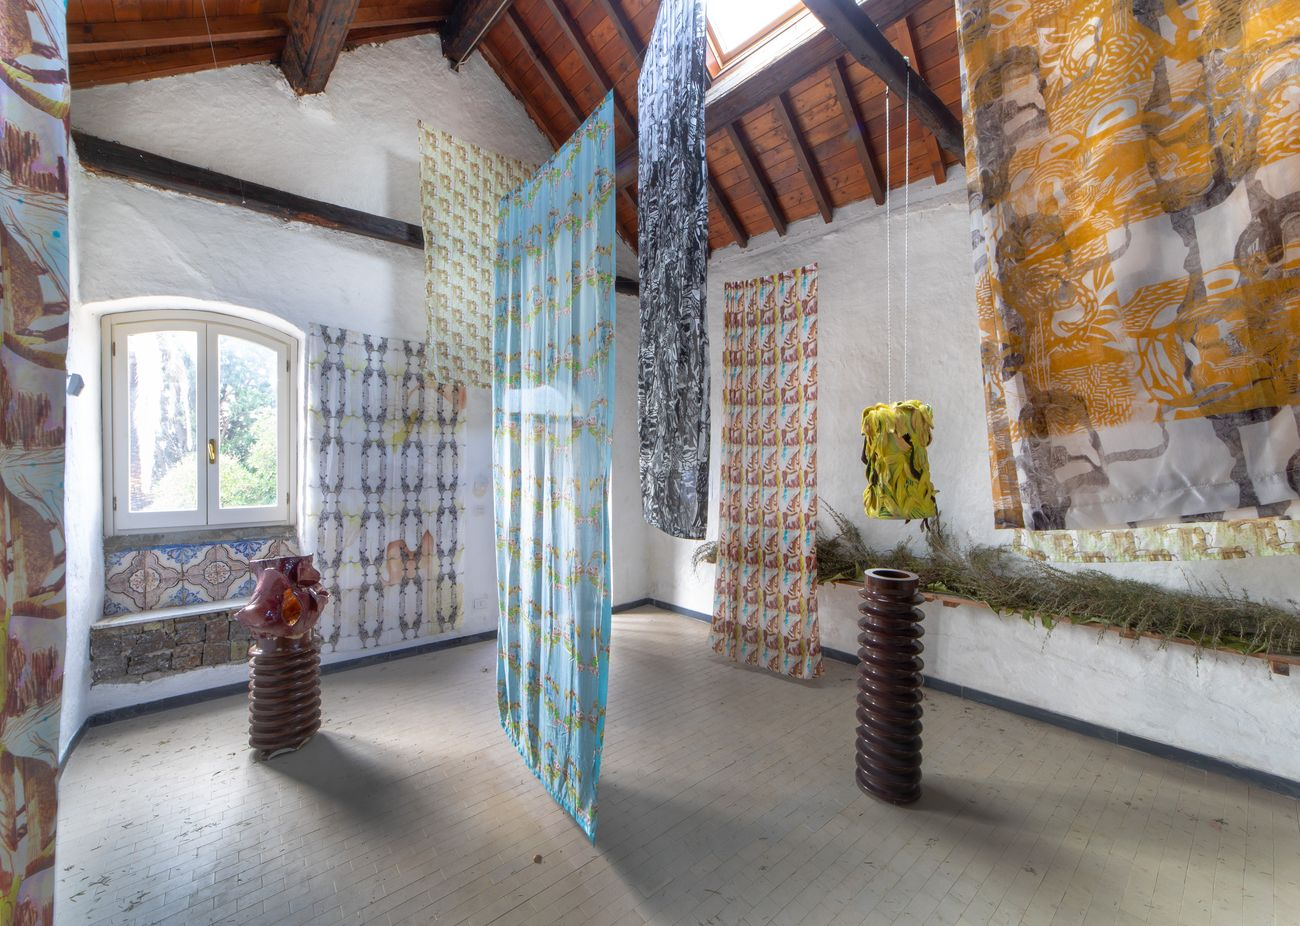 Alessandro Roma. Process and Form. Exhibition view at Casa Museo Jorn, Albissola Marina 2018. Photo Matteo Zarbo